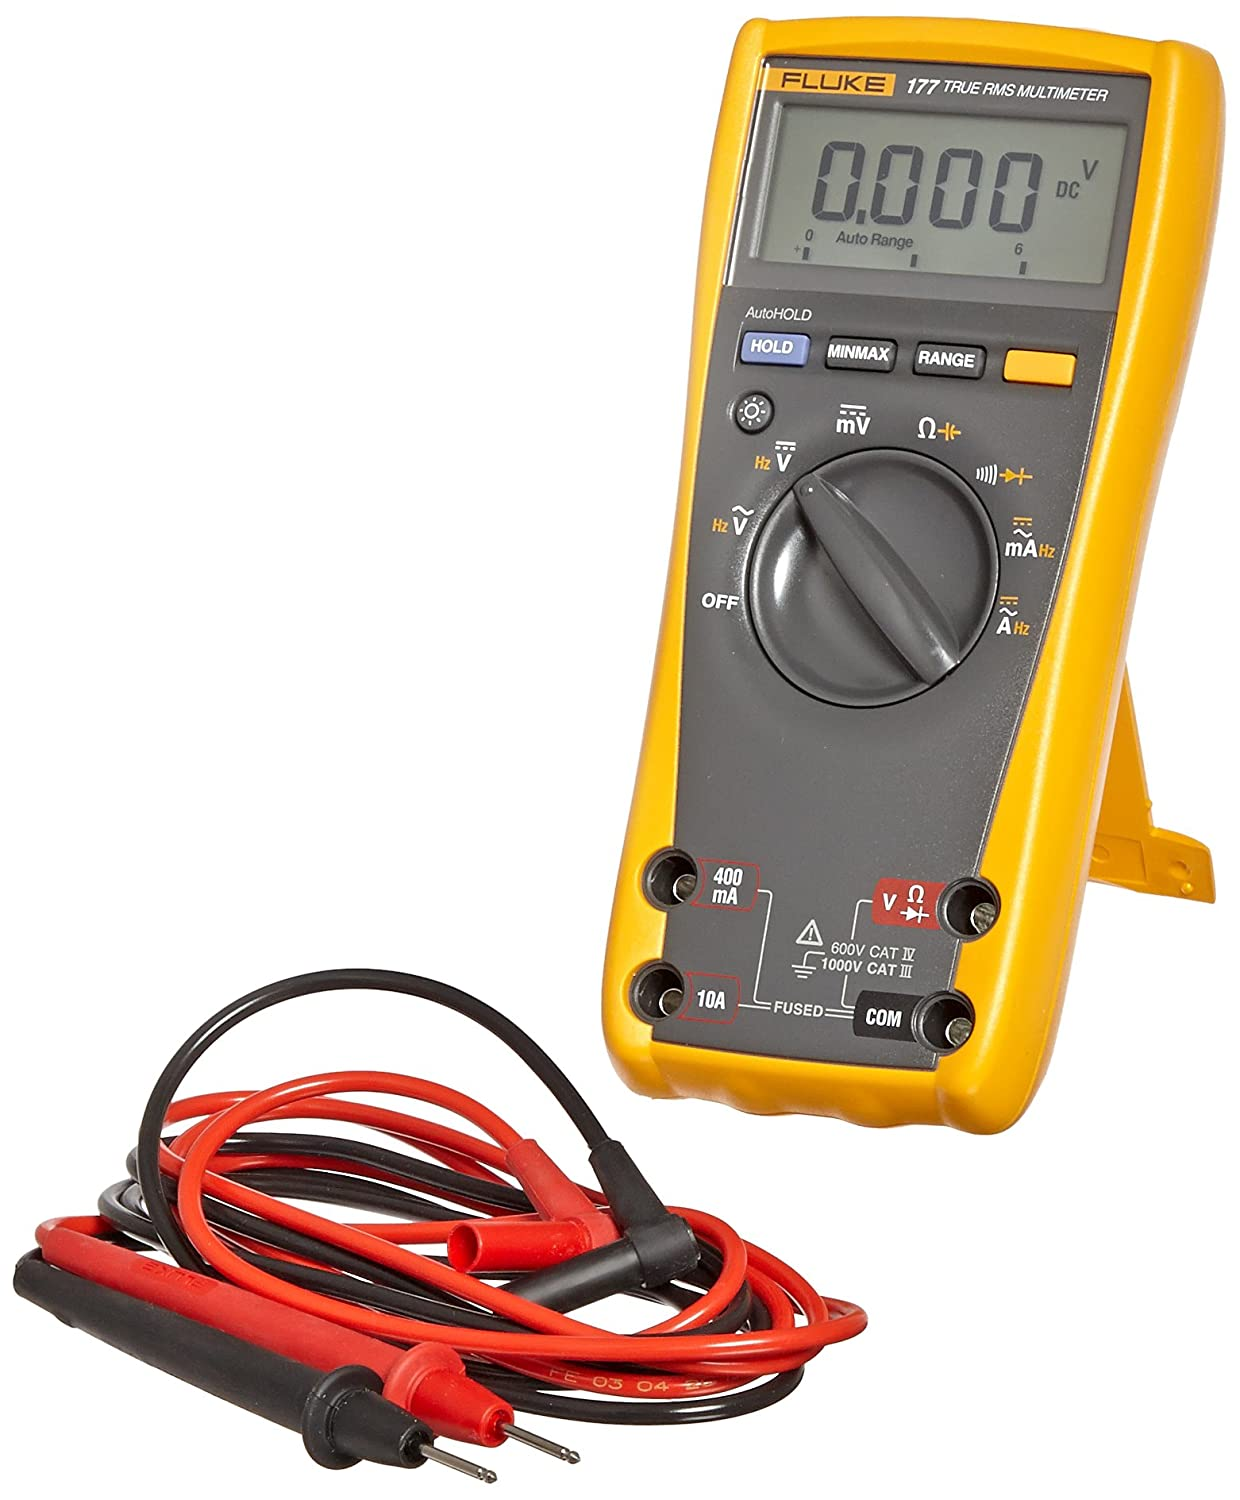 FLUKE Digital Multimeter FLUKE 177